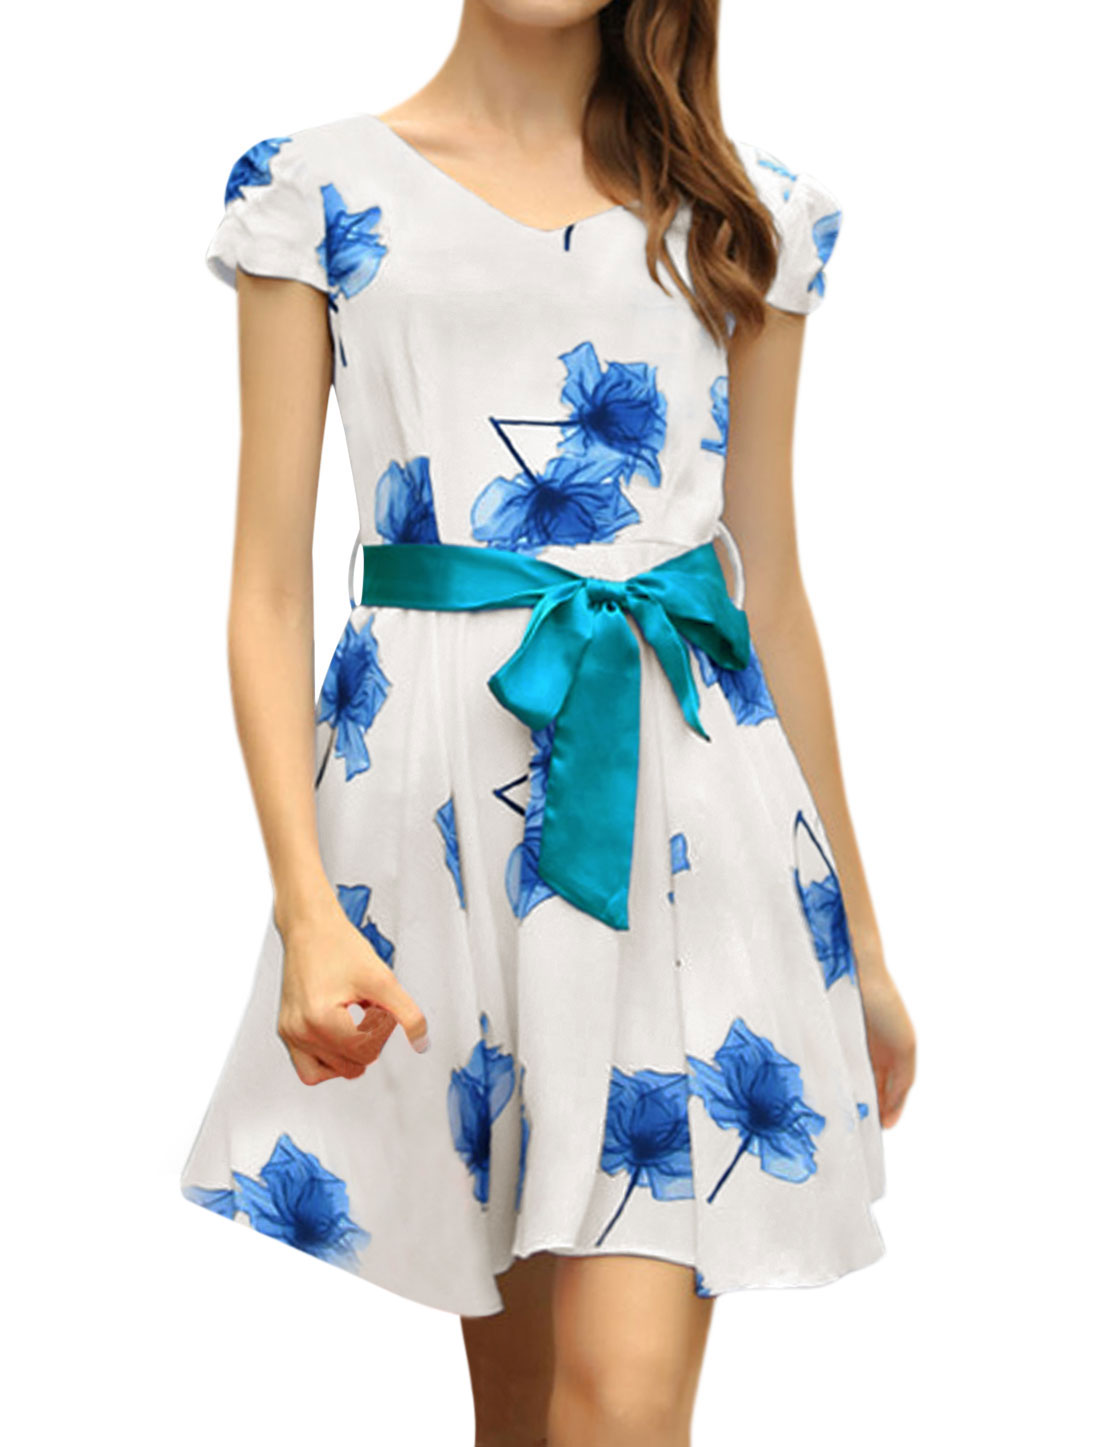 Ladies Cap Sleeve V Neck Floral Print Unlined Casual Dress White Blue M